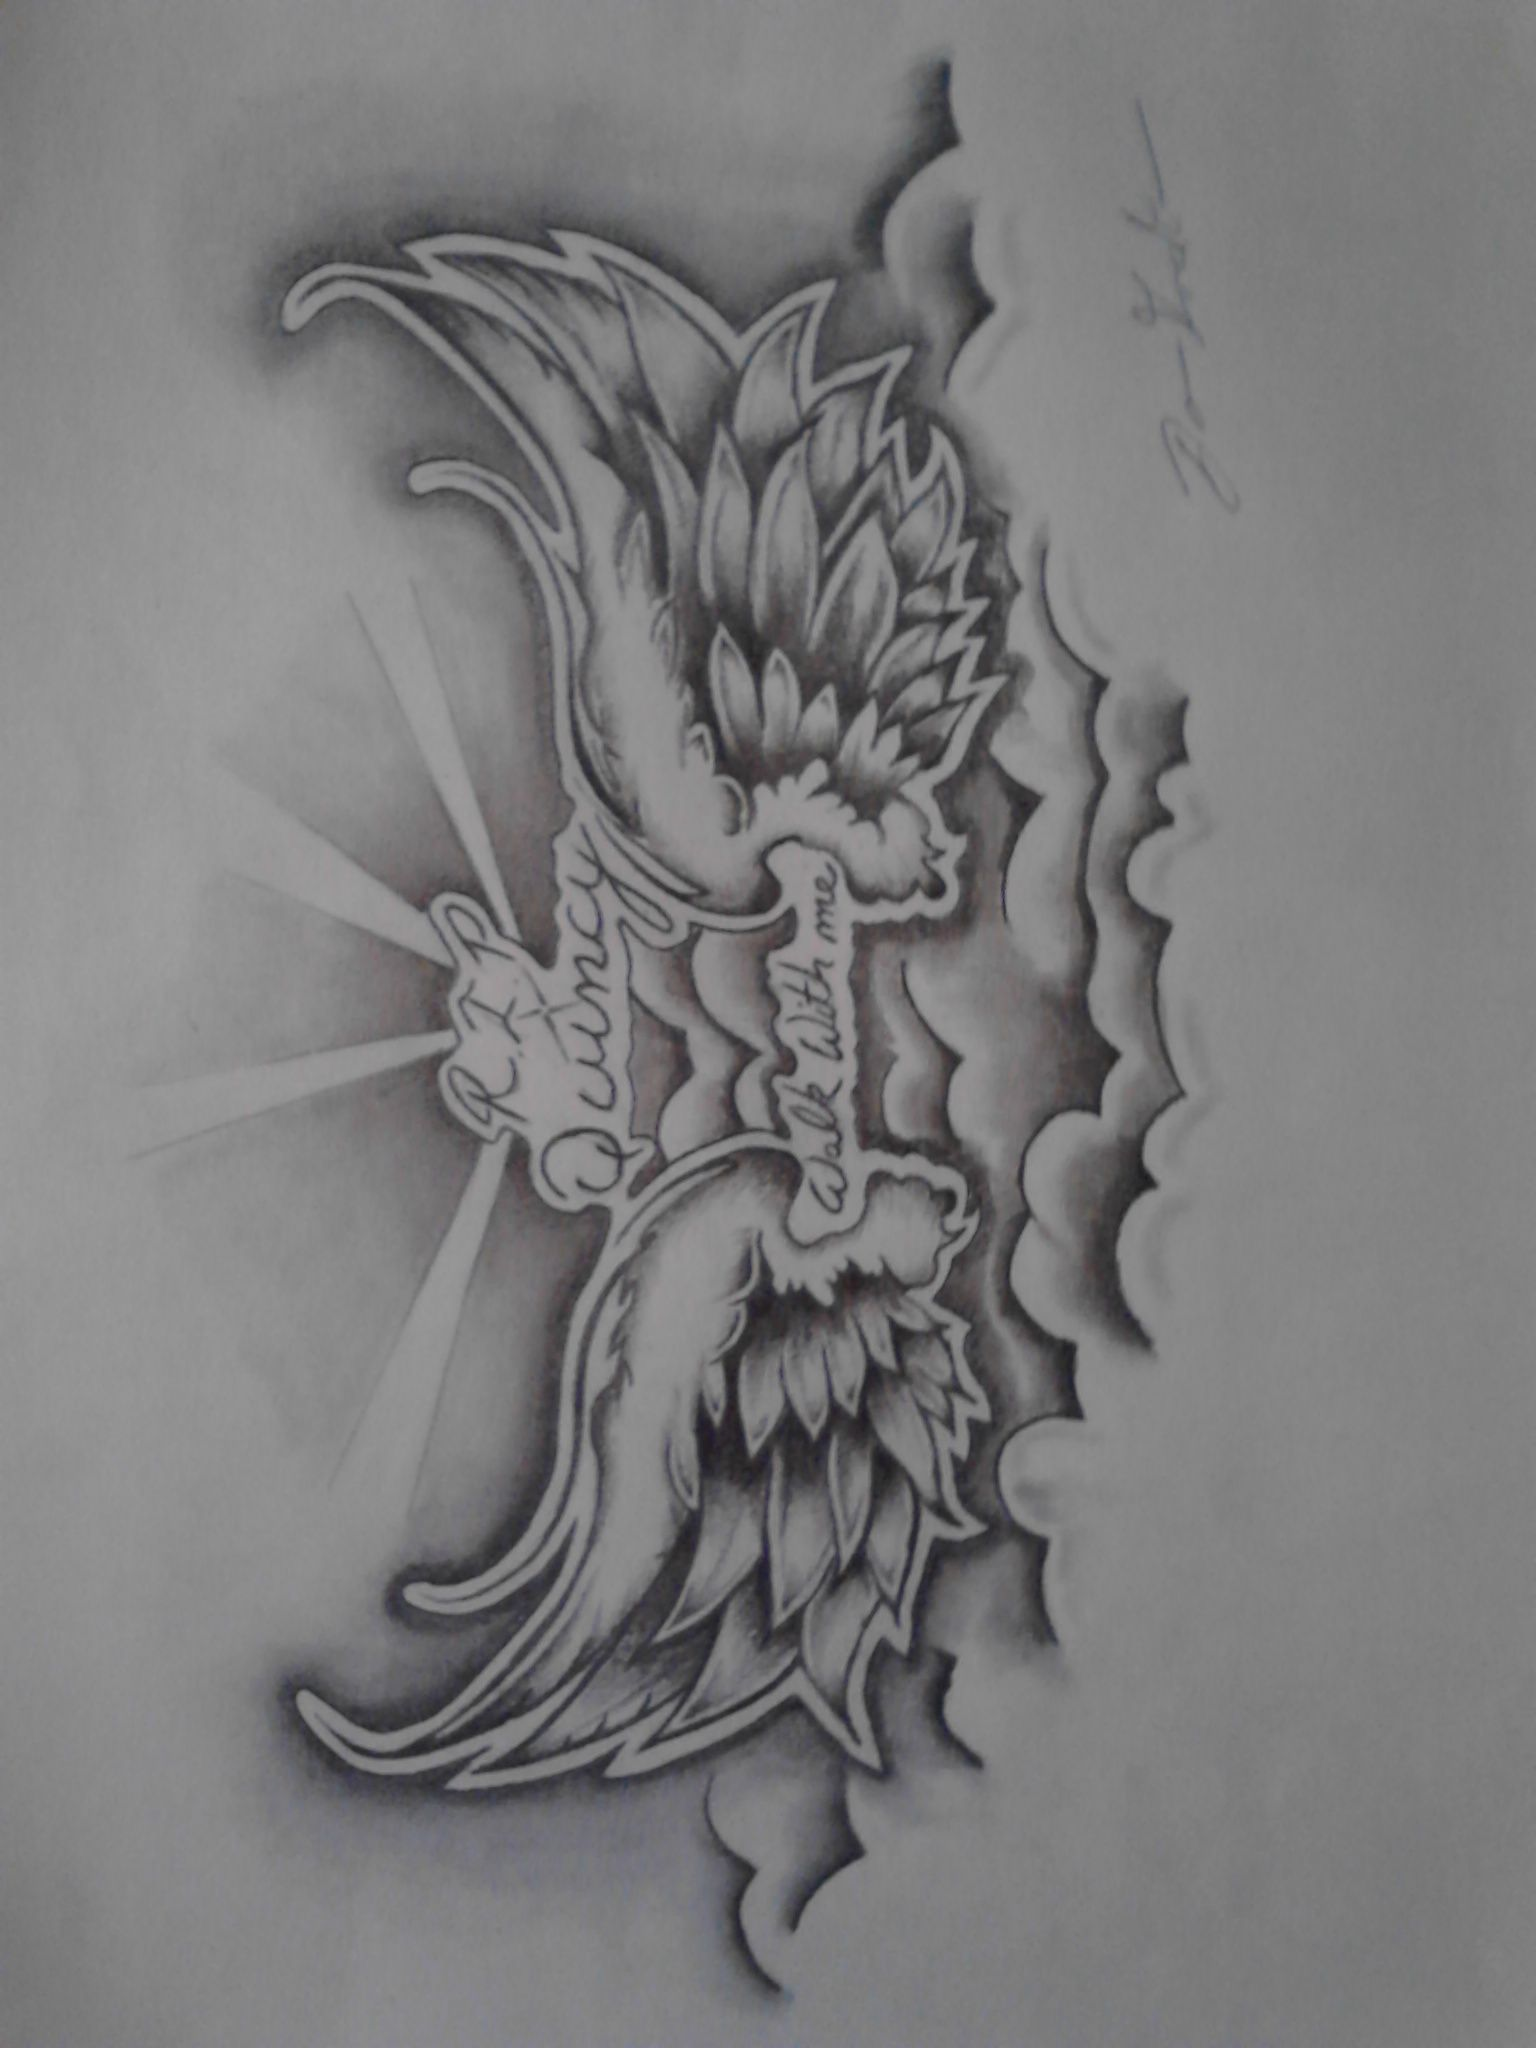 Angel Wings Tattoo Design Tattoo Design Drawings Tattoo Designs